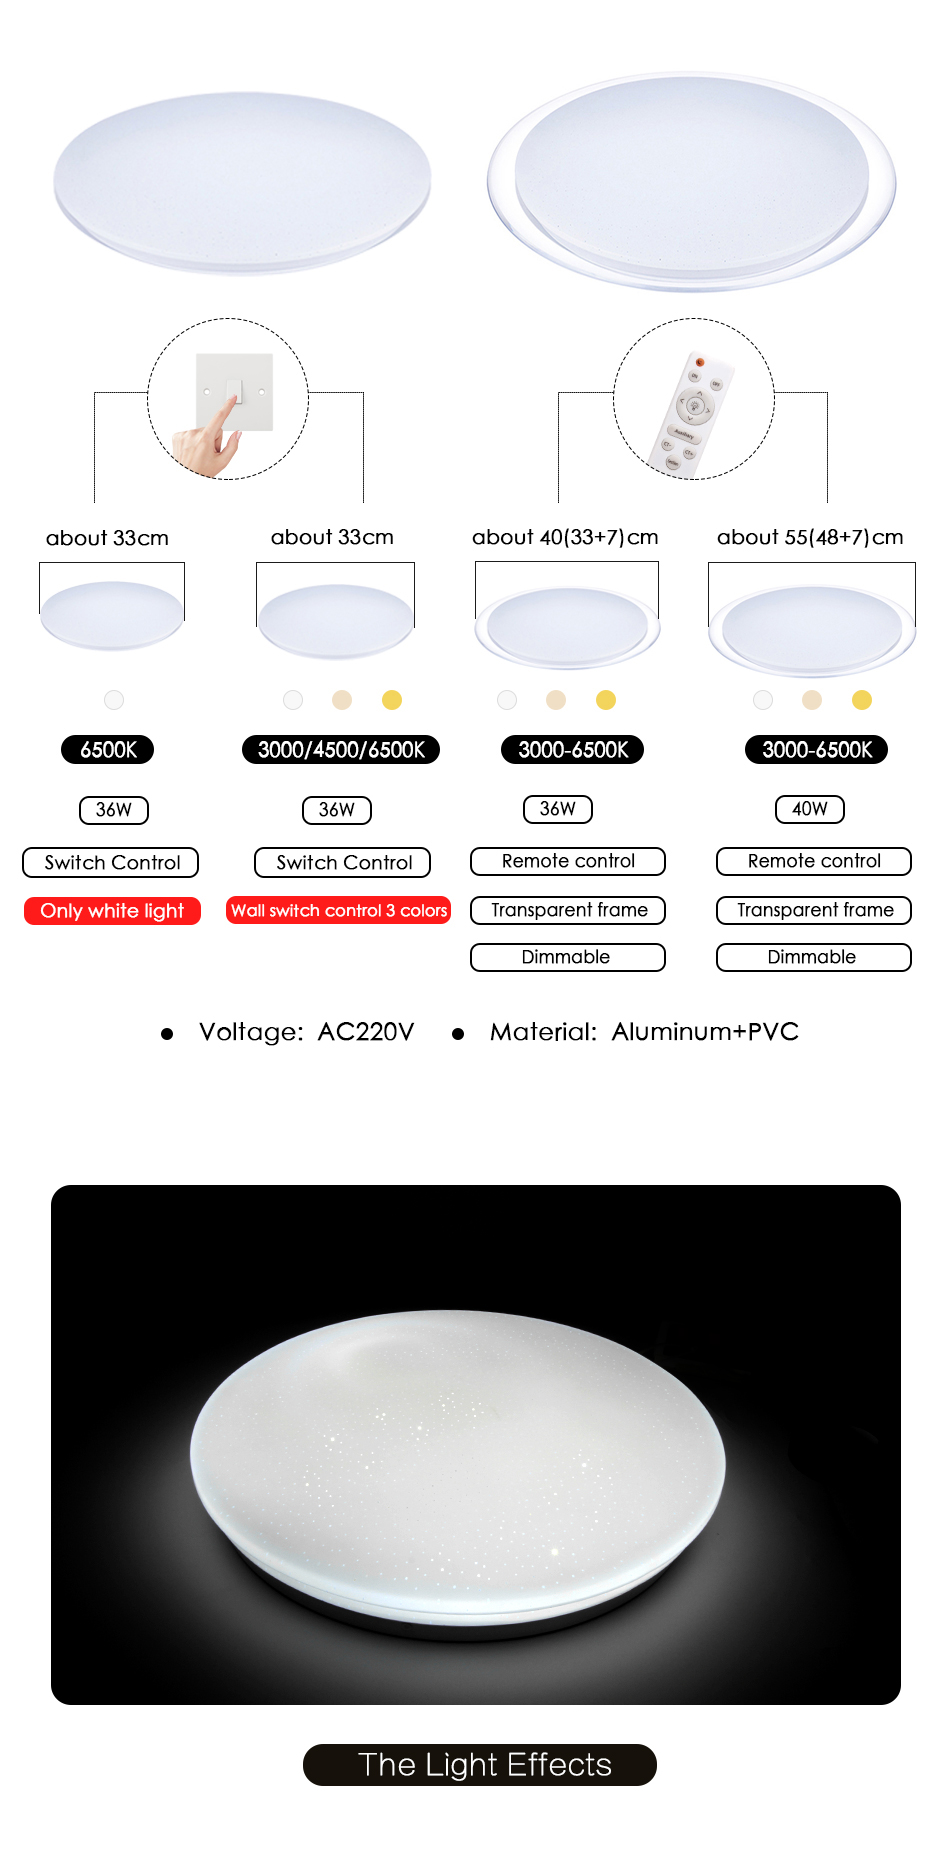 HTB1zto7aEGF3KVjSZFoq6zmpFXa1 Modern LED Ceiling Light Bluetooth Music RGB Dimmable Lamp 36W 40W APP Remote Control AC 220V 240V Colourful Party Bedroom